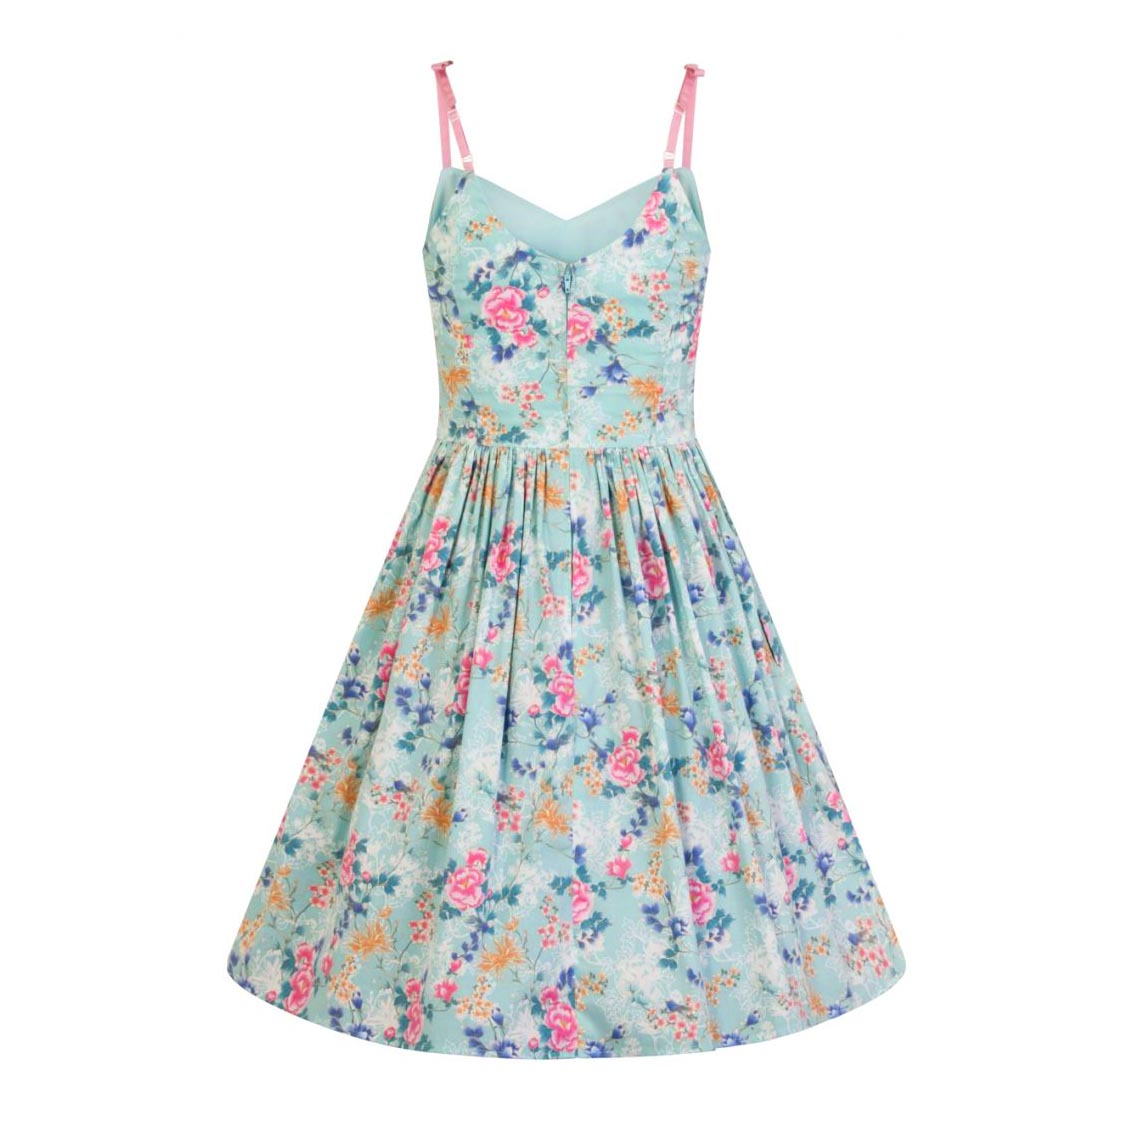 Hell-Bunny-50s-Mid-Length-Dress-Vintage-Blue-Pink-SAKURA-Flowers-Roses-All-Sizes thumbnail 5